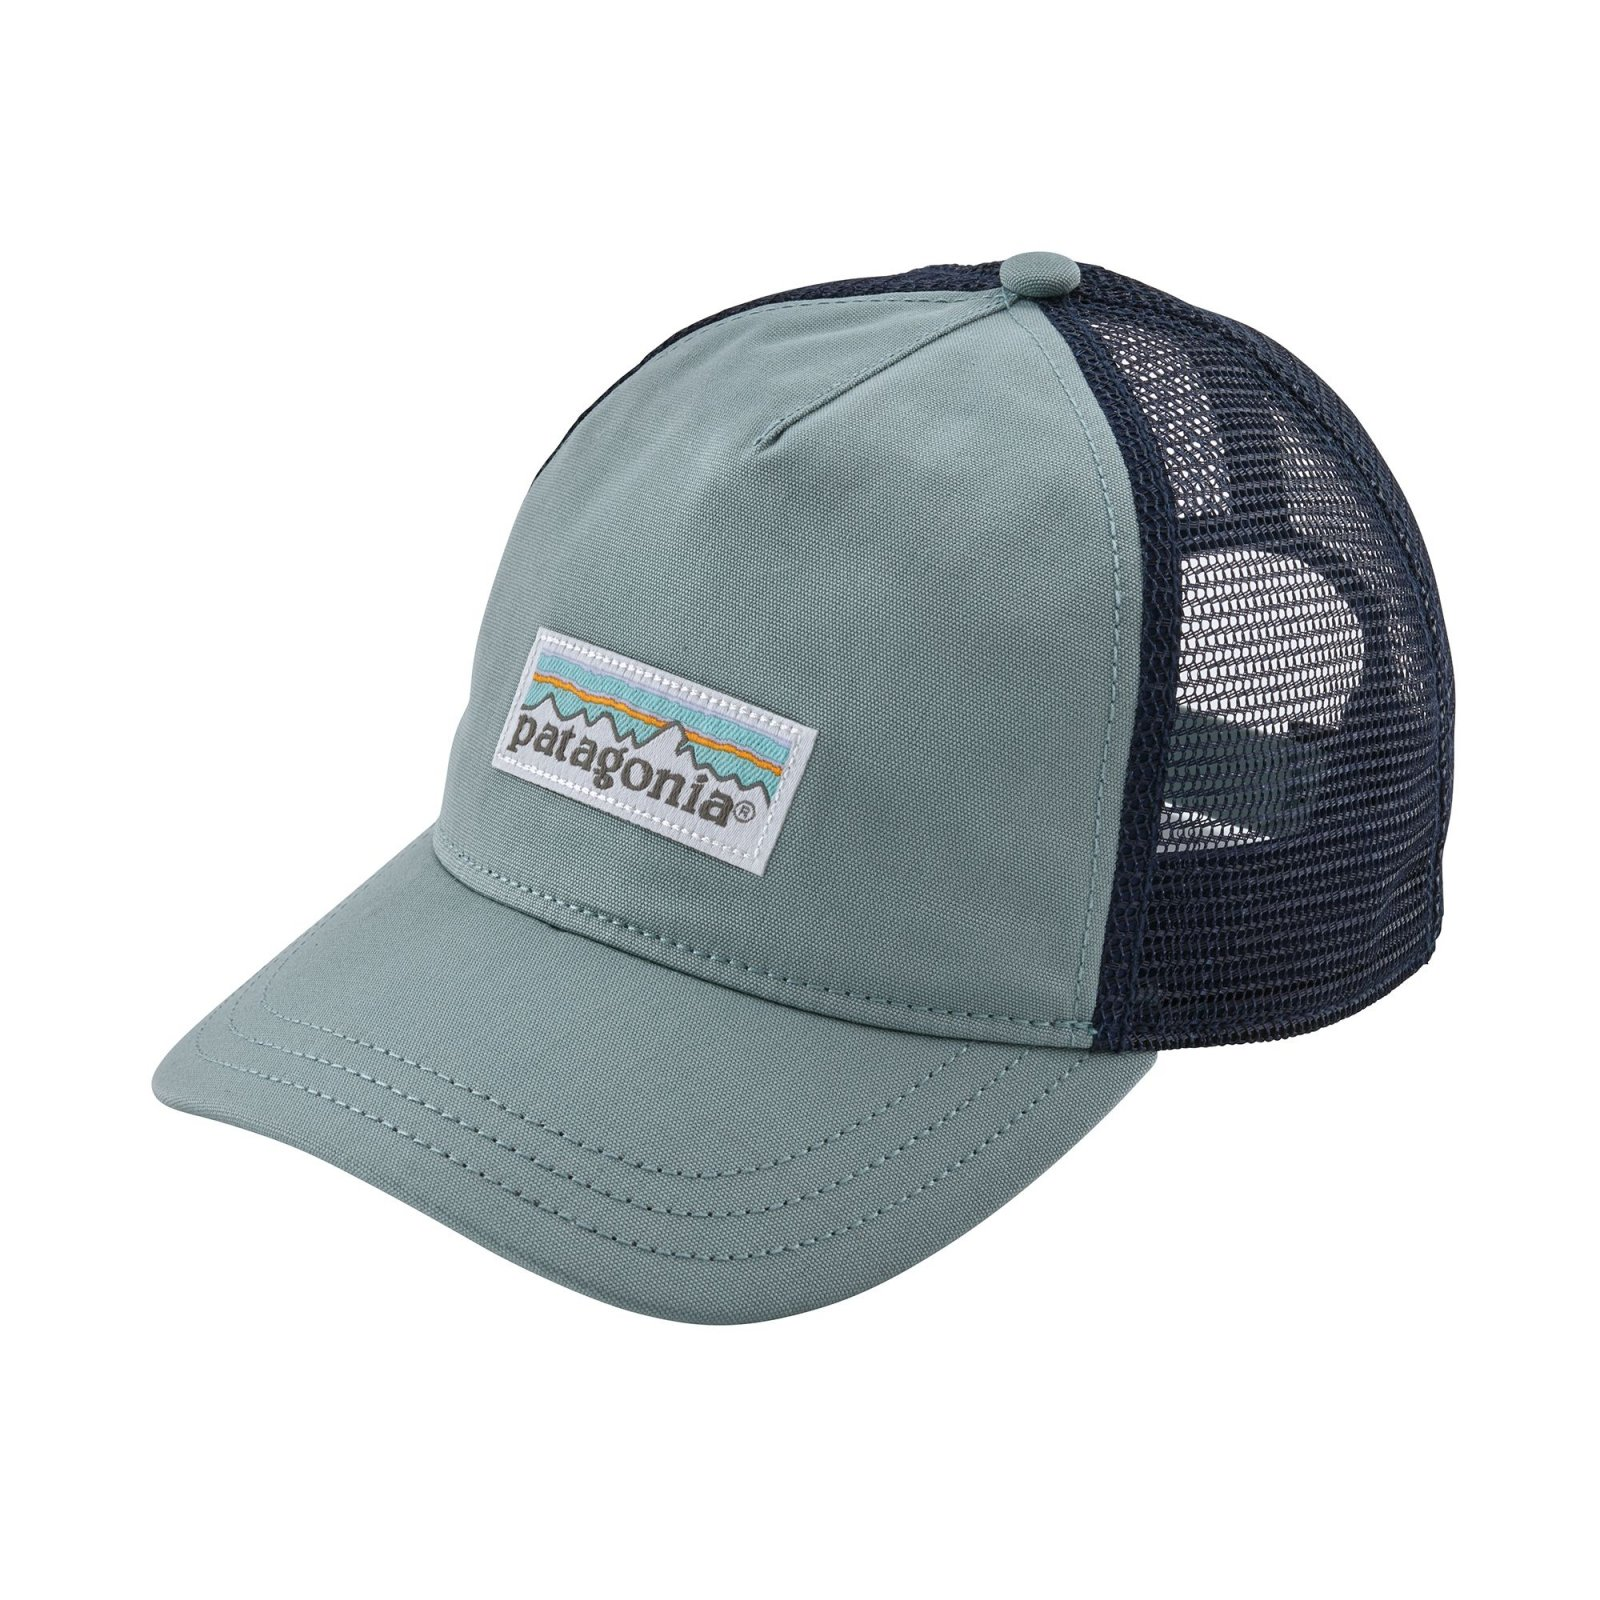 8878a204900 Patagonia Pastel P-6 Label Layback Trucker Hat - 190696104288